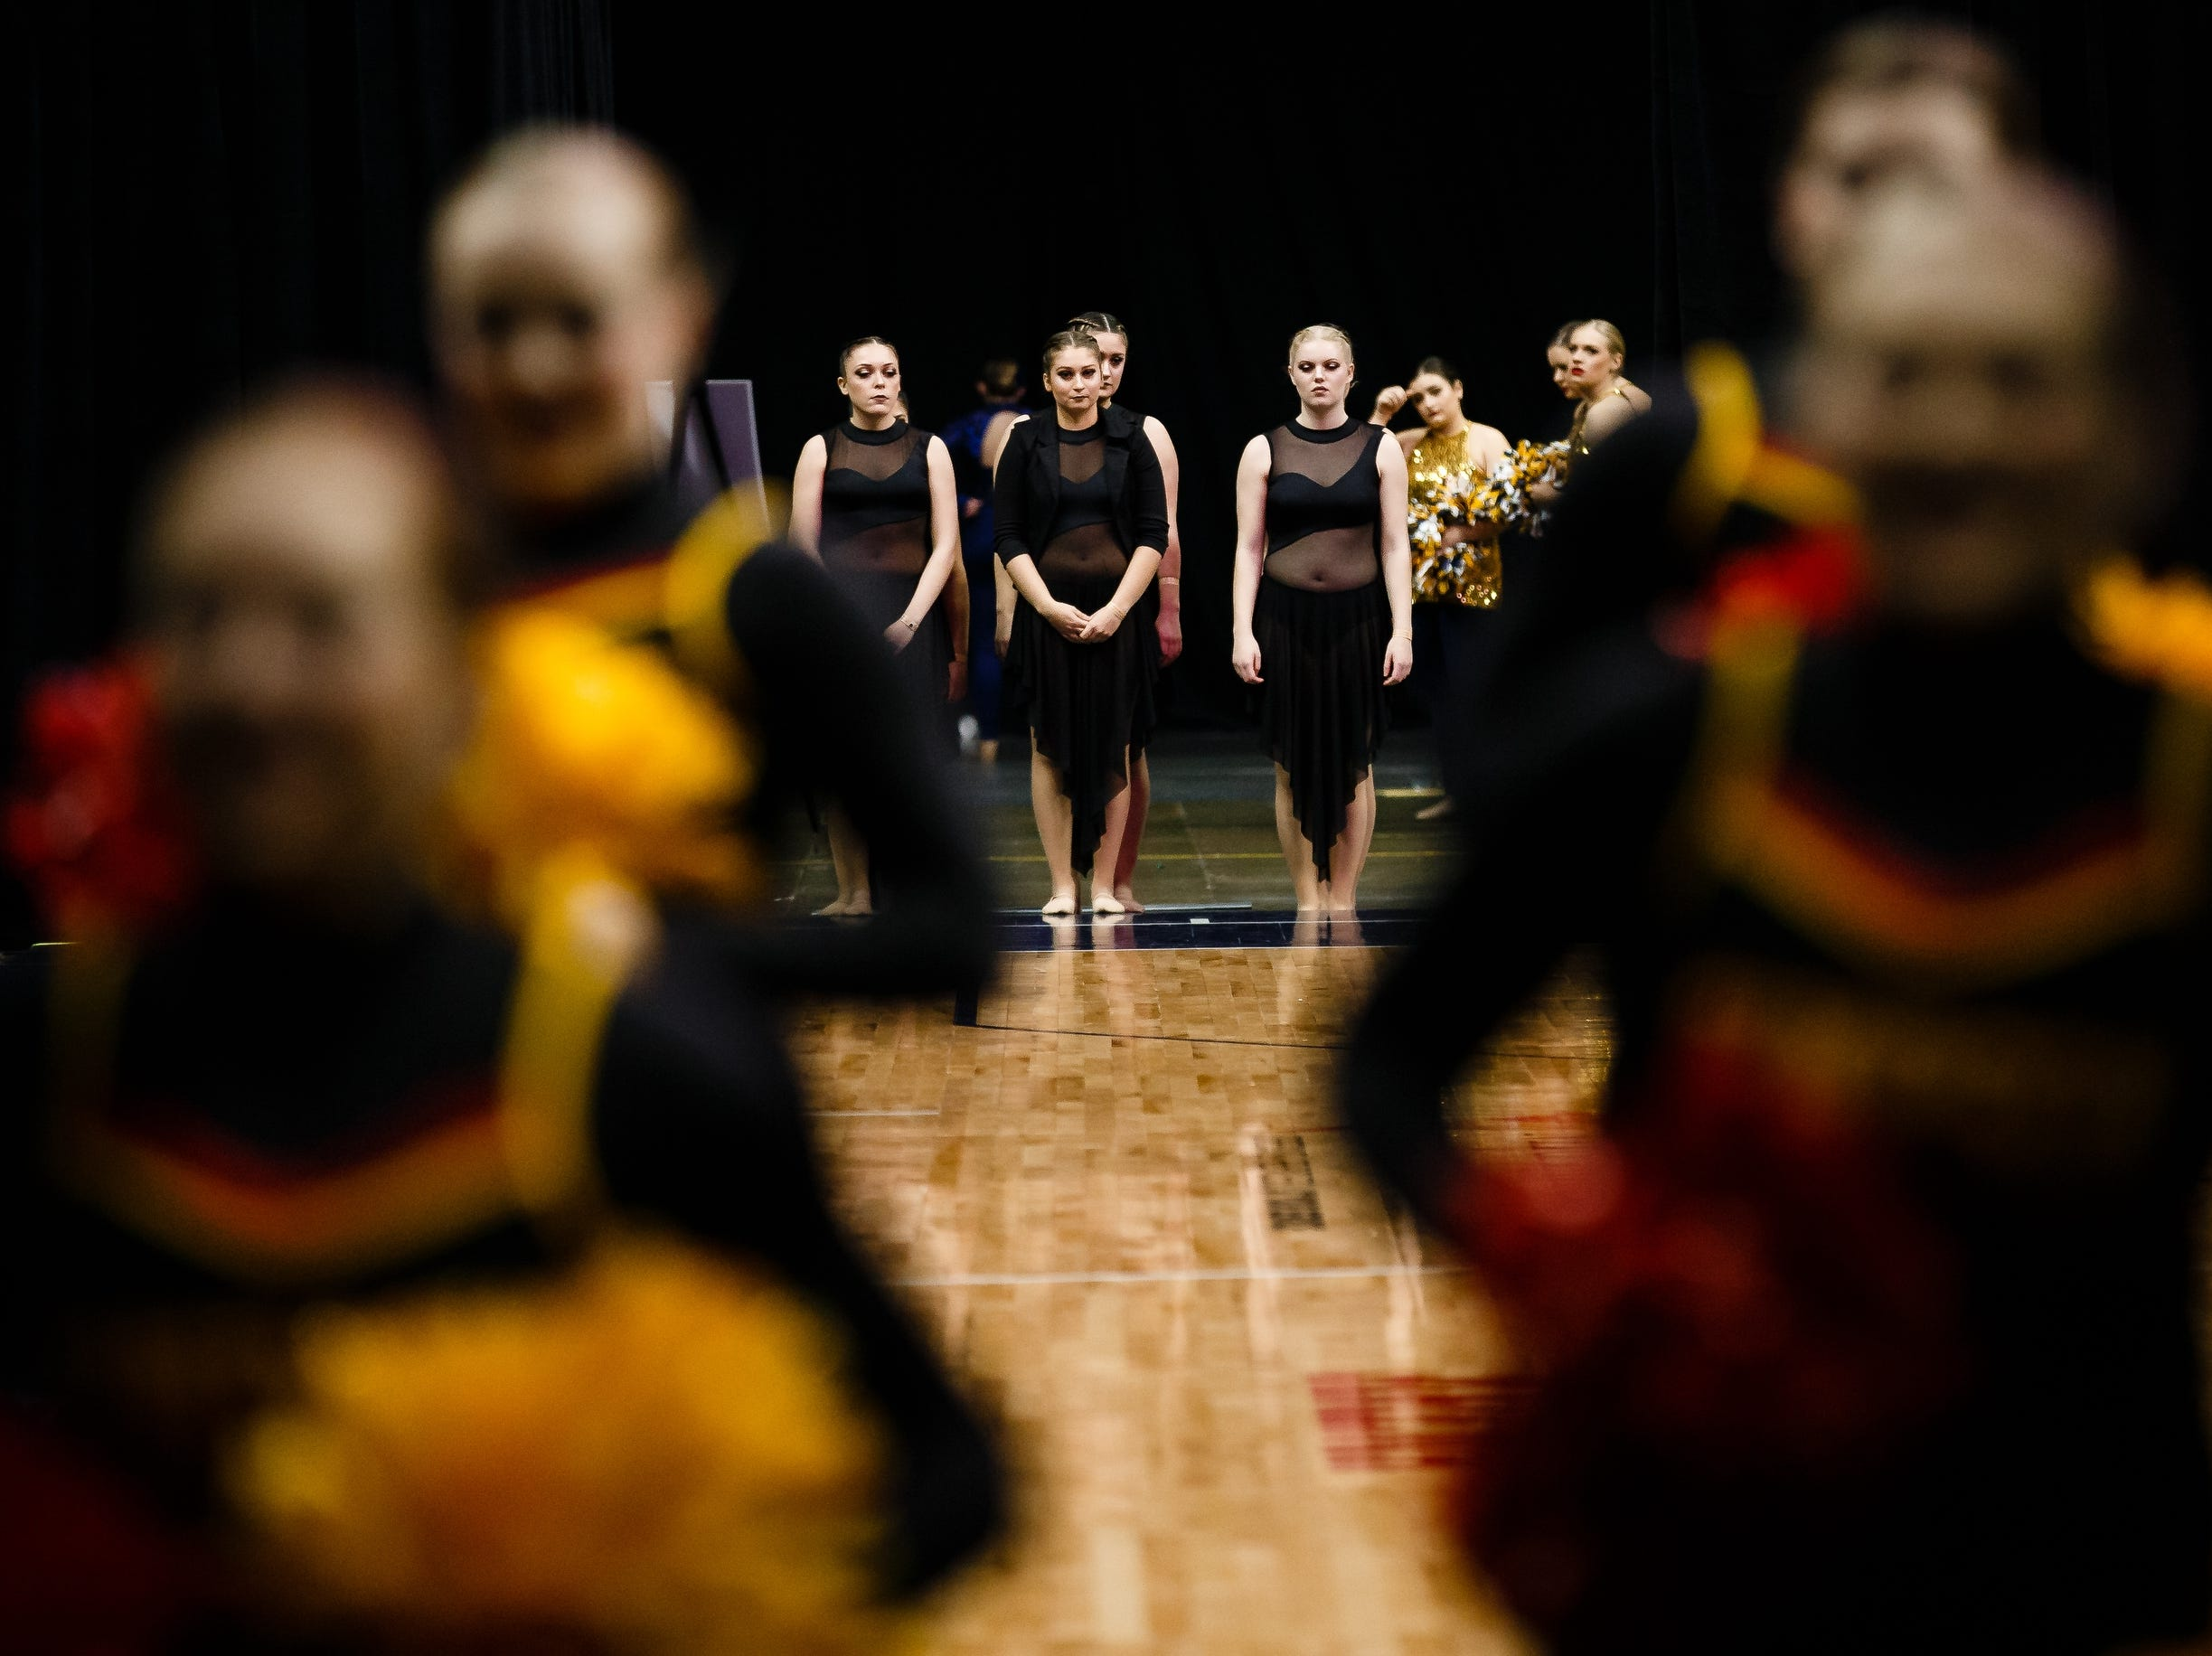 Clarke University dancers wait to be called during the Iowa Dance State Championships at Wells Fargo Arena on Friday, Nov. 30, 2018, in Des Moines.